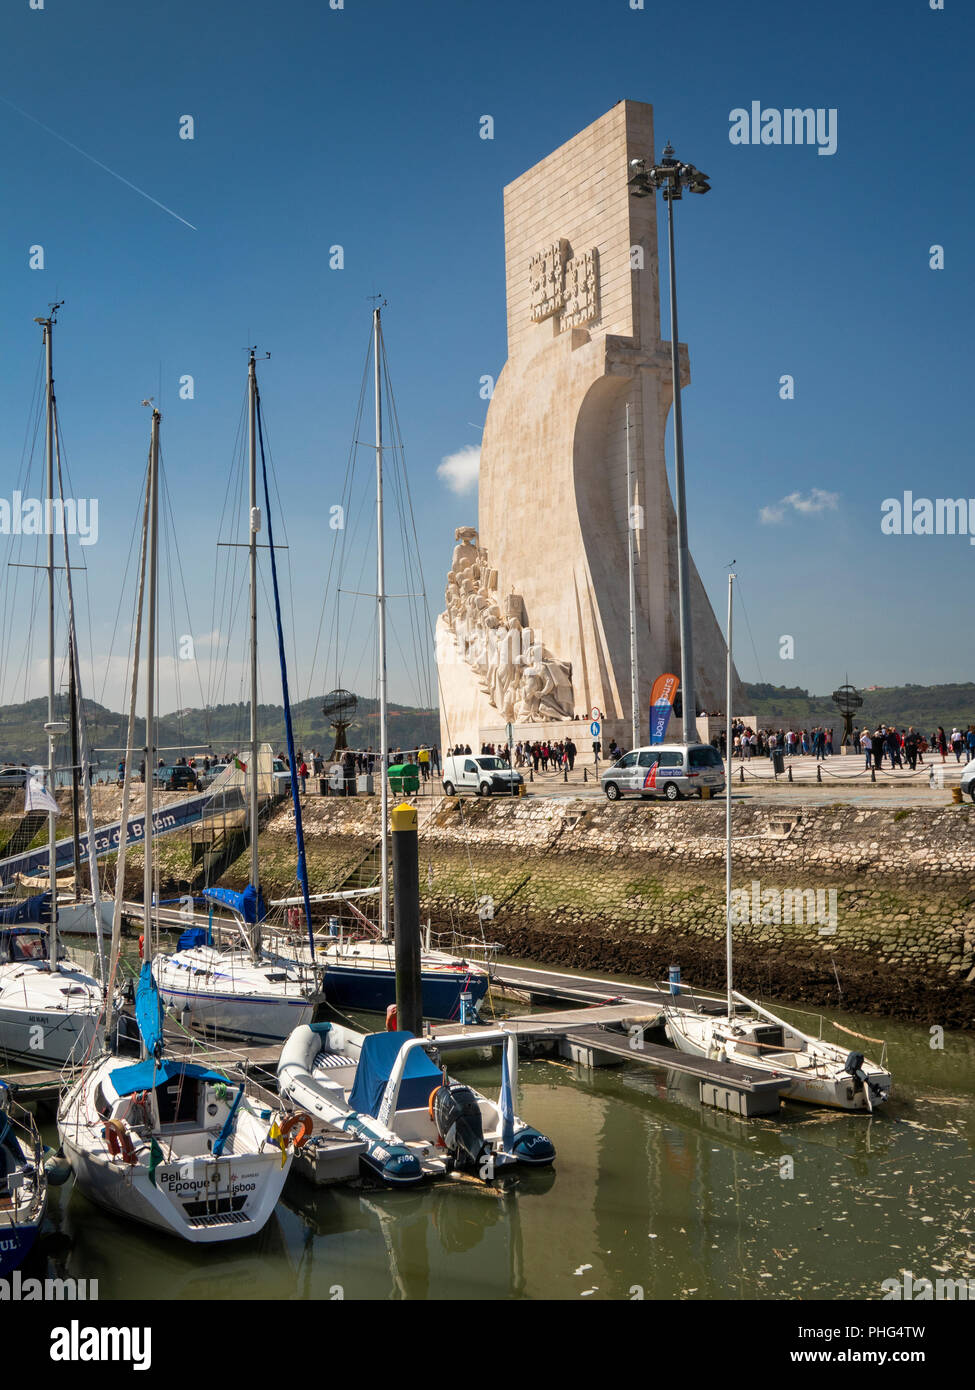 Portugal, Lisbon, Belem, Padrao dos Deccobrimentos, the discoveries monument, behind boats moored in marina - Stock Image